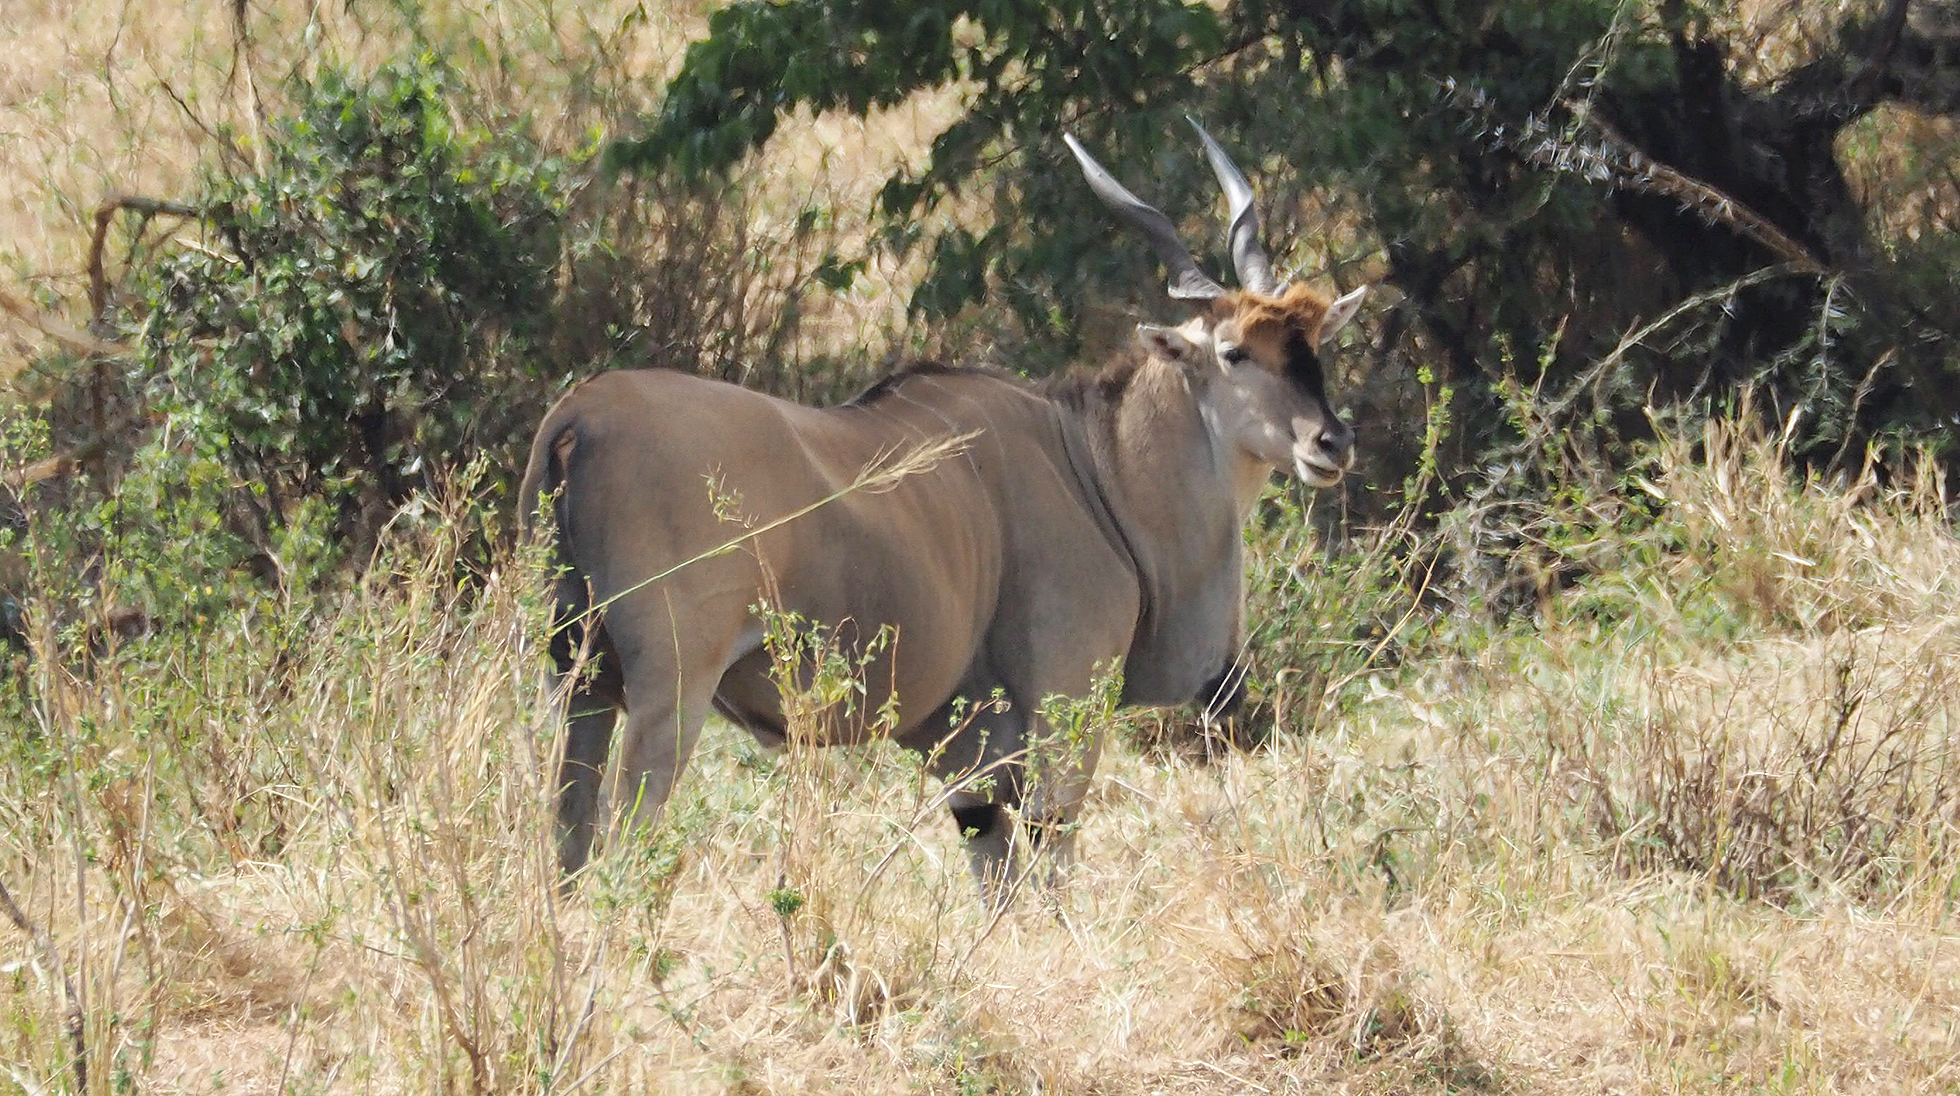 The eland is the second largest antelope in the world, slightly smaller on average than the giant eland, and now an endangered species.